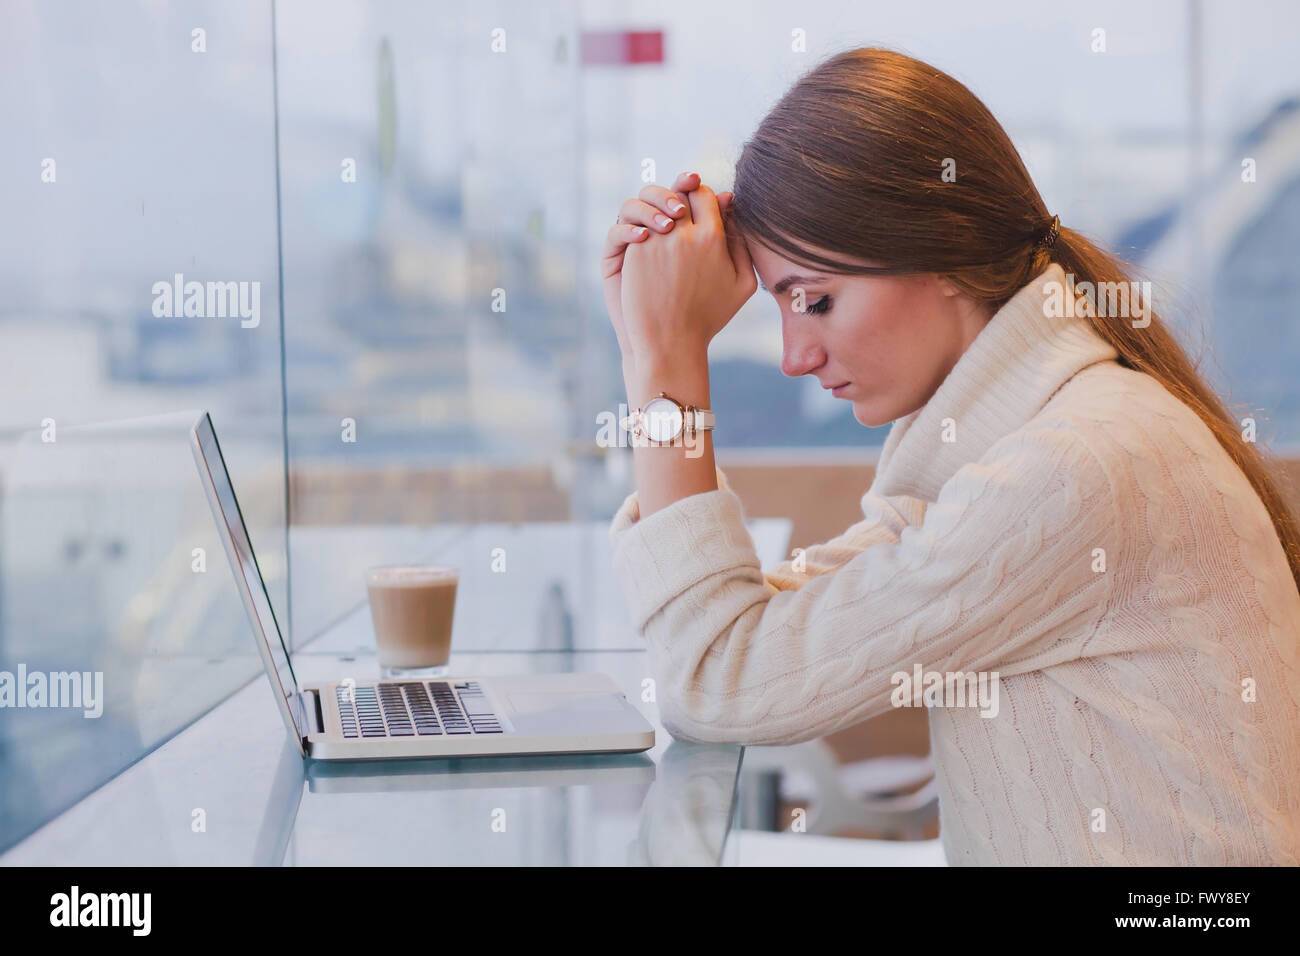 unemployment concept, problem, sad tired woman in front of laptop in modern bright cafe interior - Stock Image